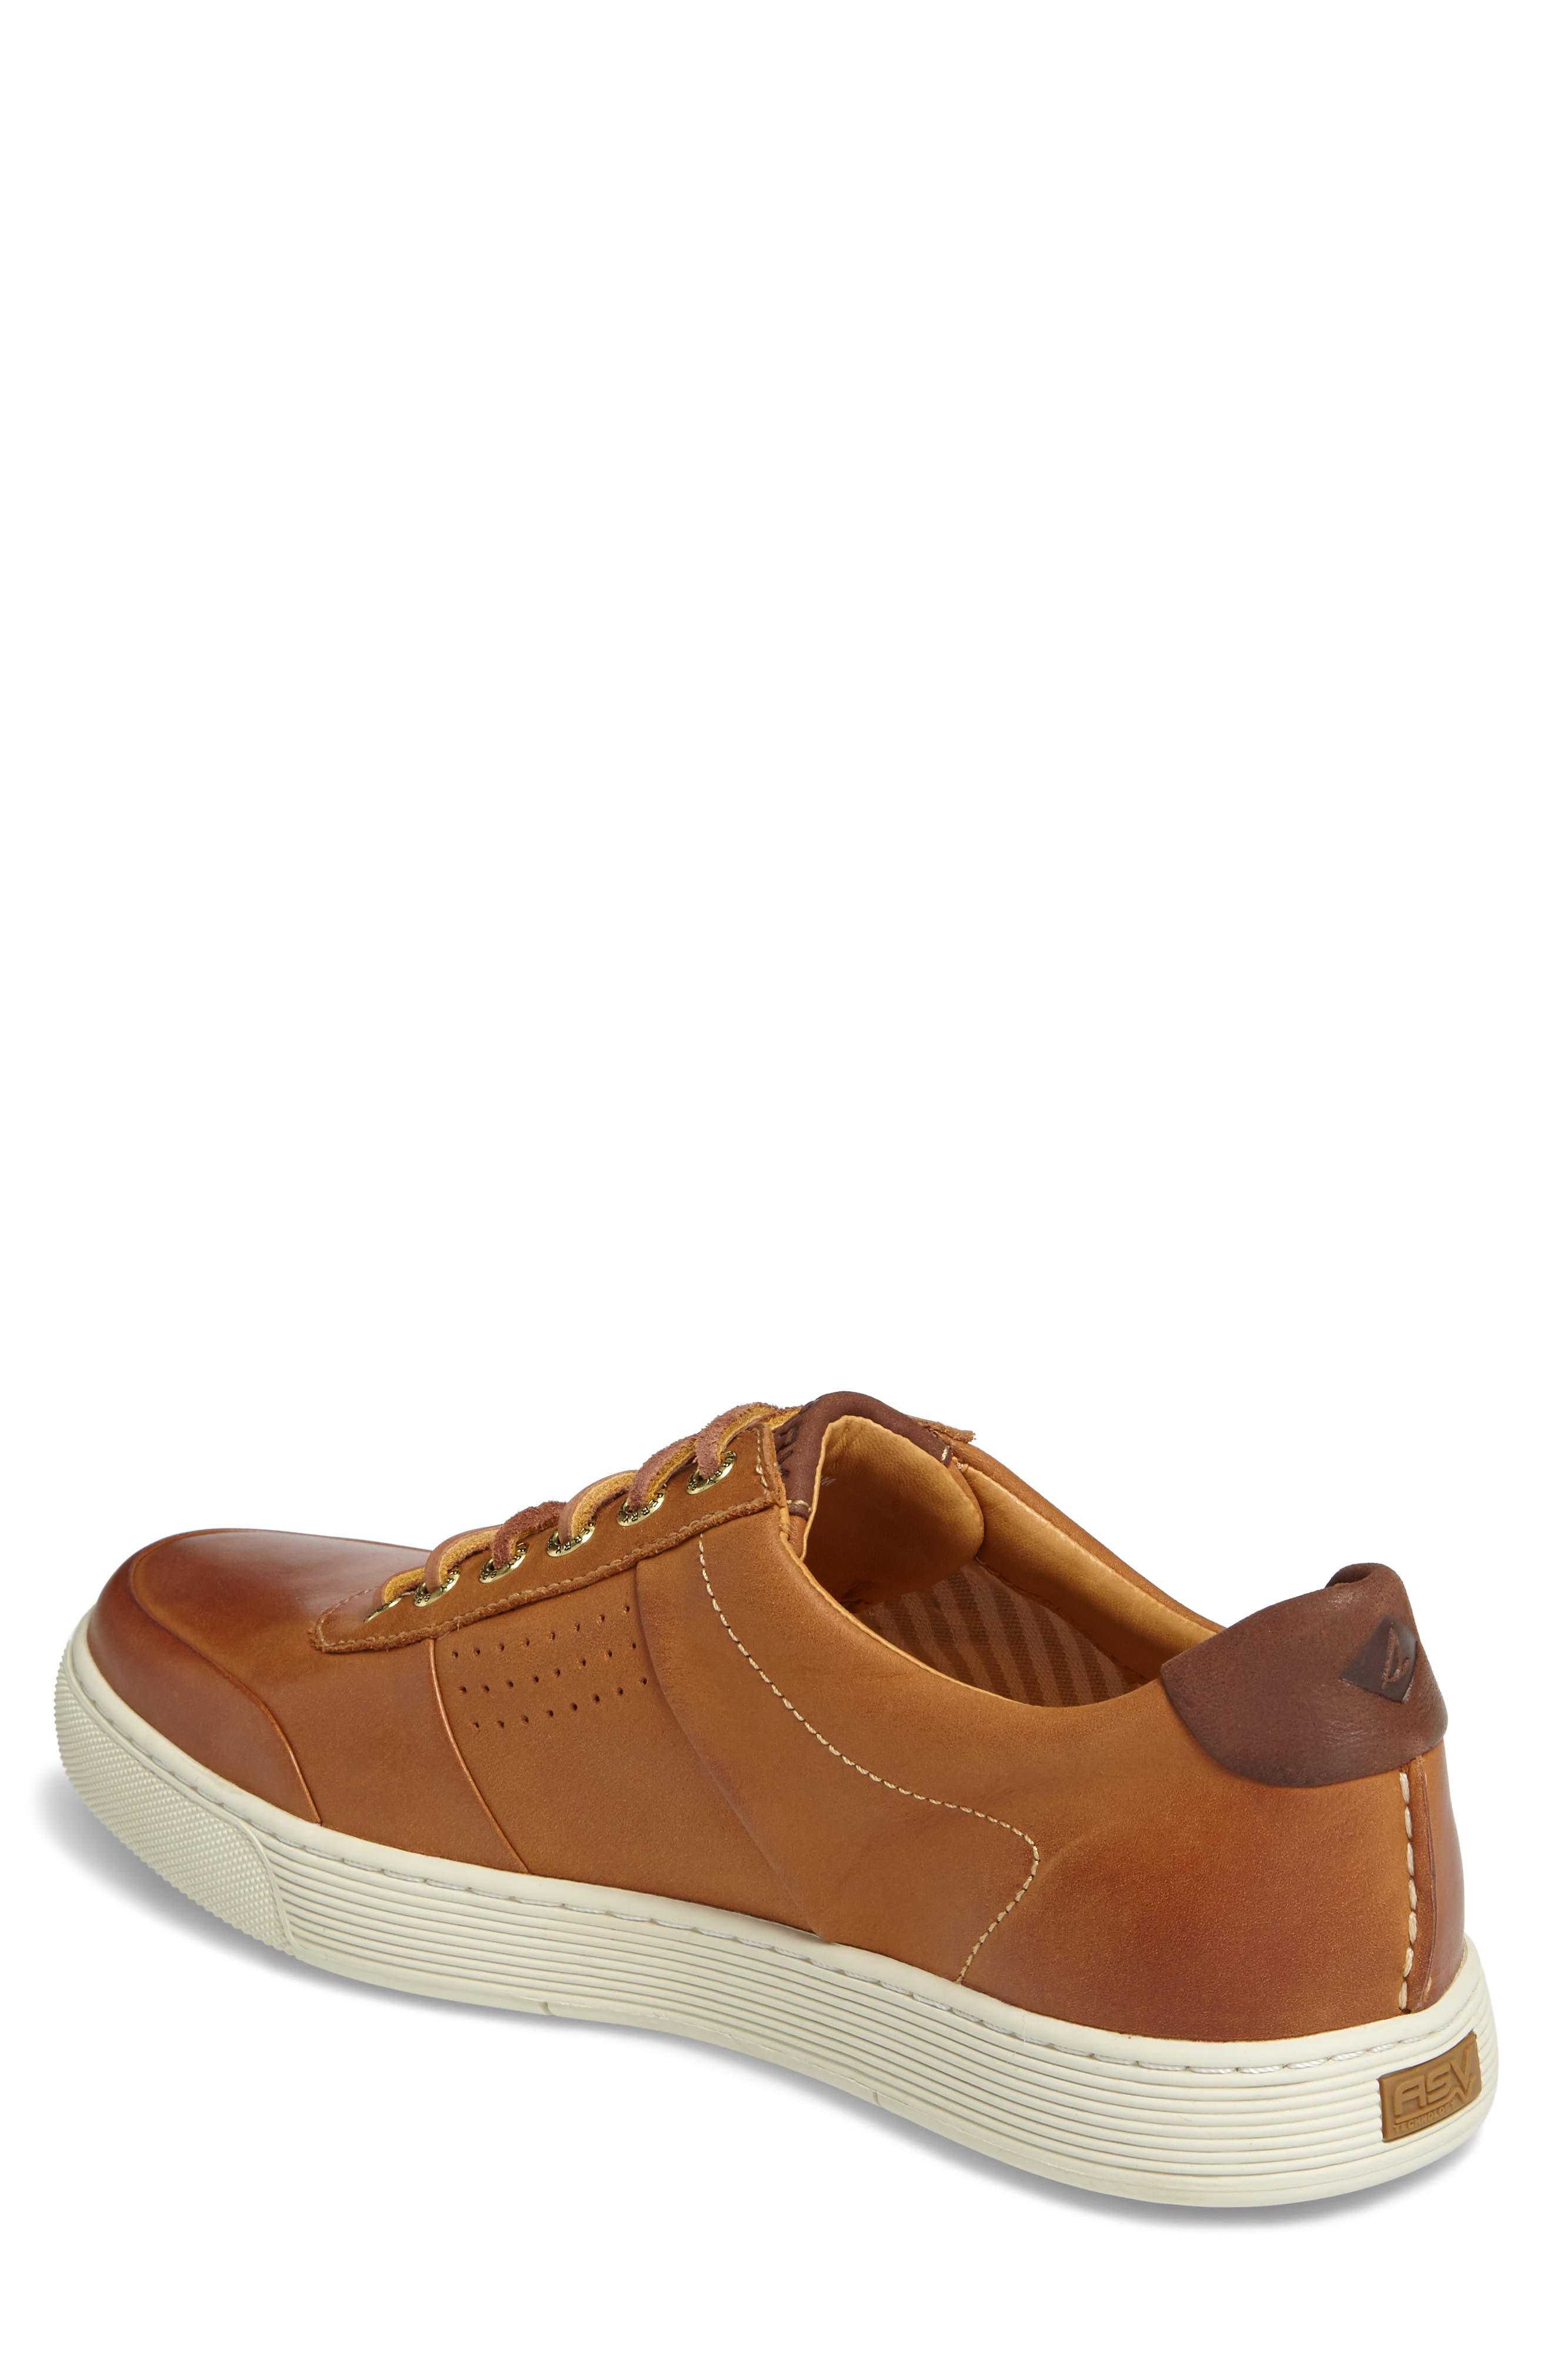 Gold Cup Sport Sneaker,                             Alternate thumbnail 4, color,